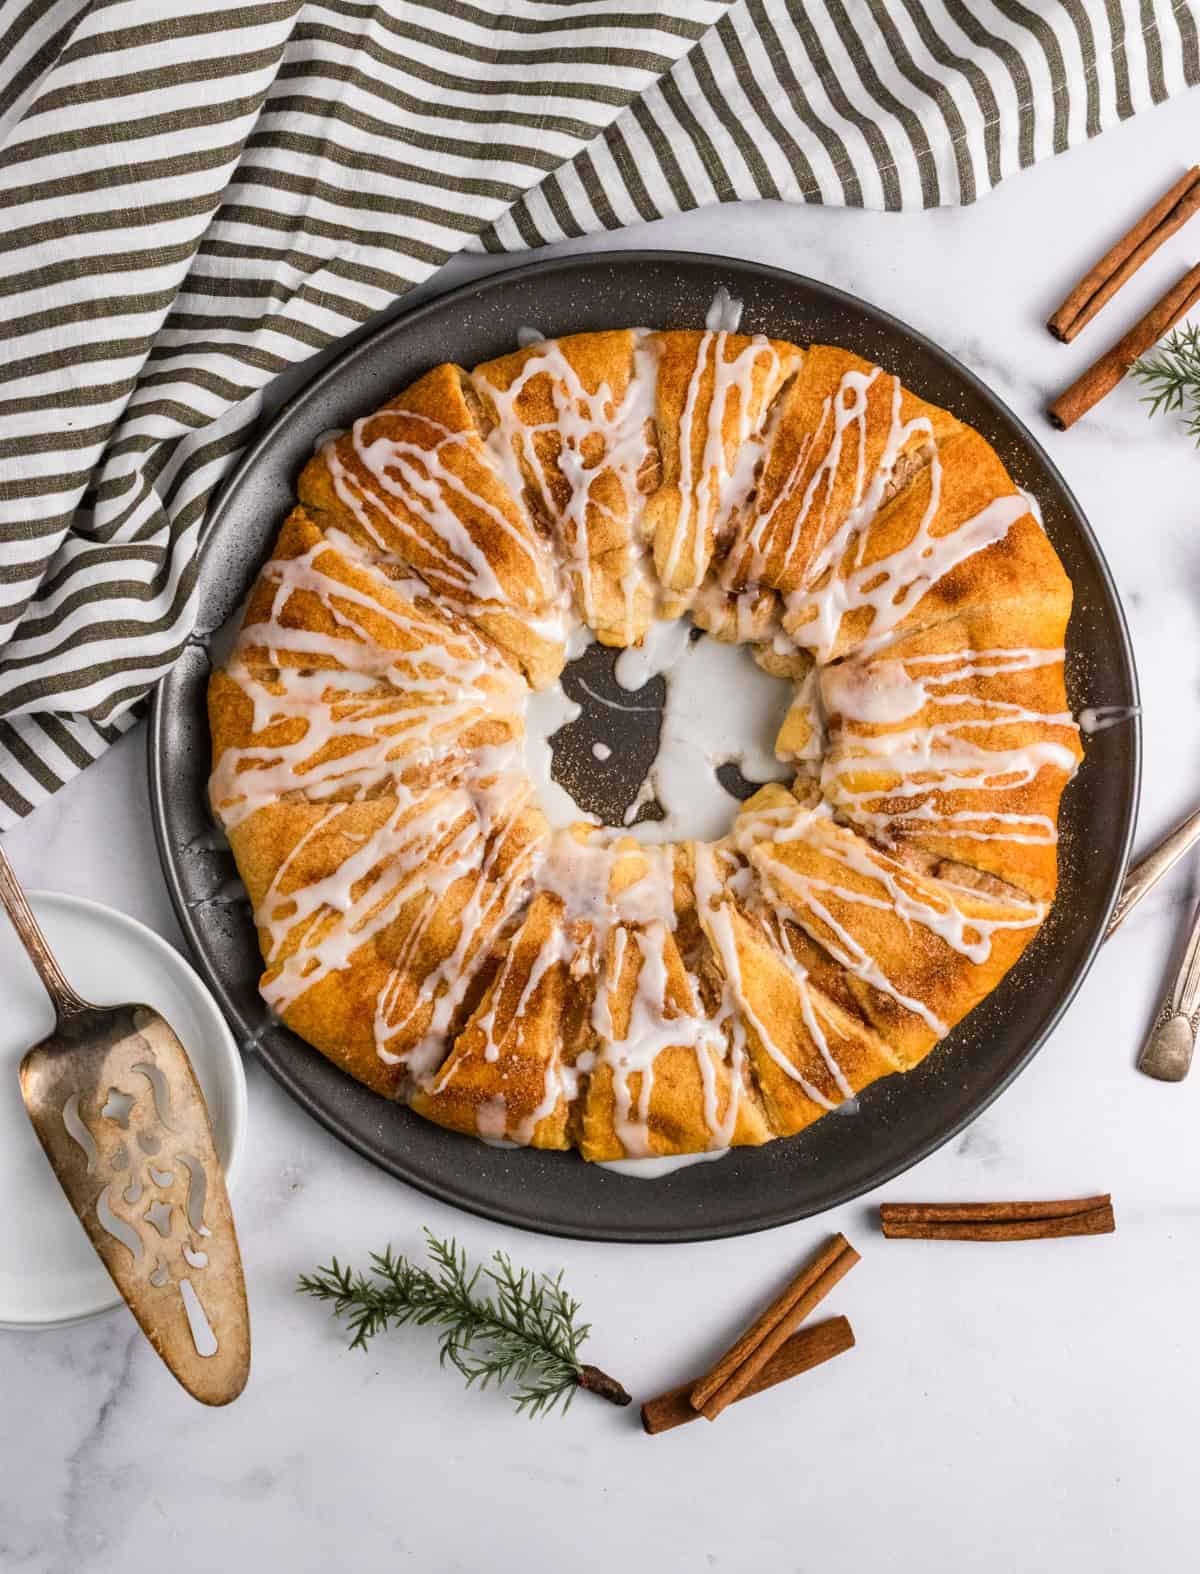 Crescent roll wreath with cinnamon and icing on pan.